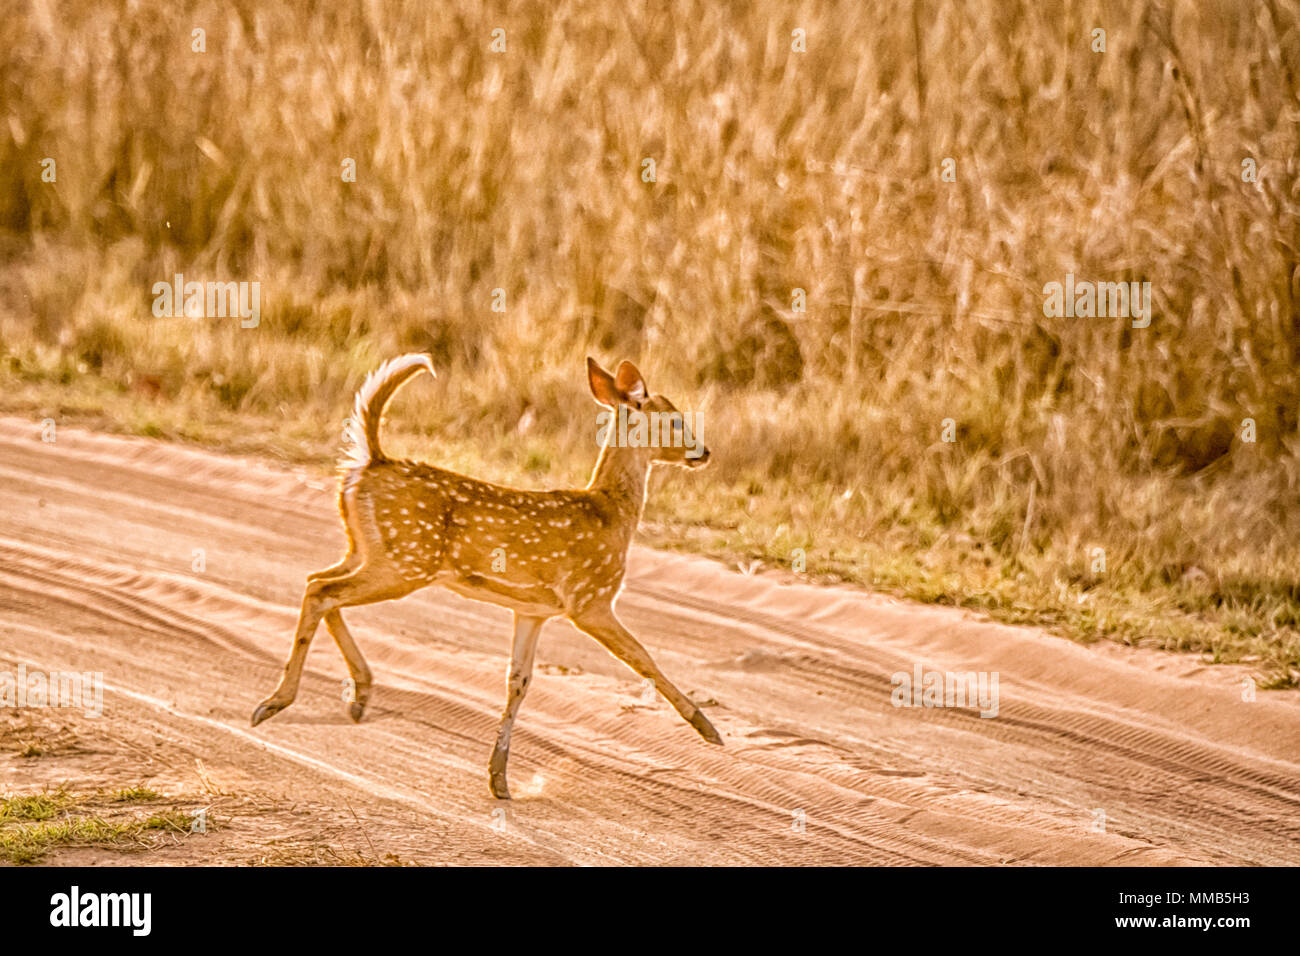 Young wild Chital or Spotted Deer fawn, Axis axis, running, jumping, in Bandhavgarh National Park, Madhya Pradesh, India - Stock Image